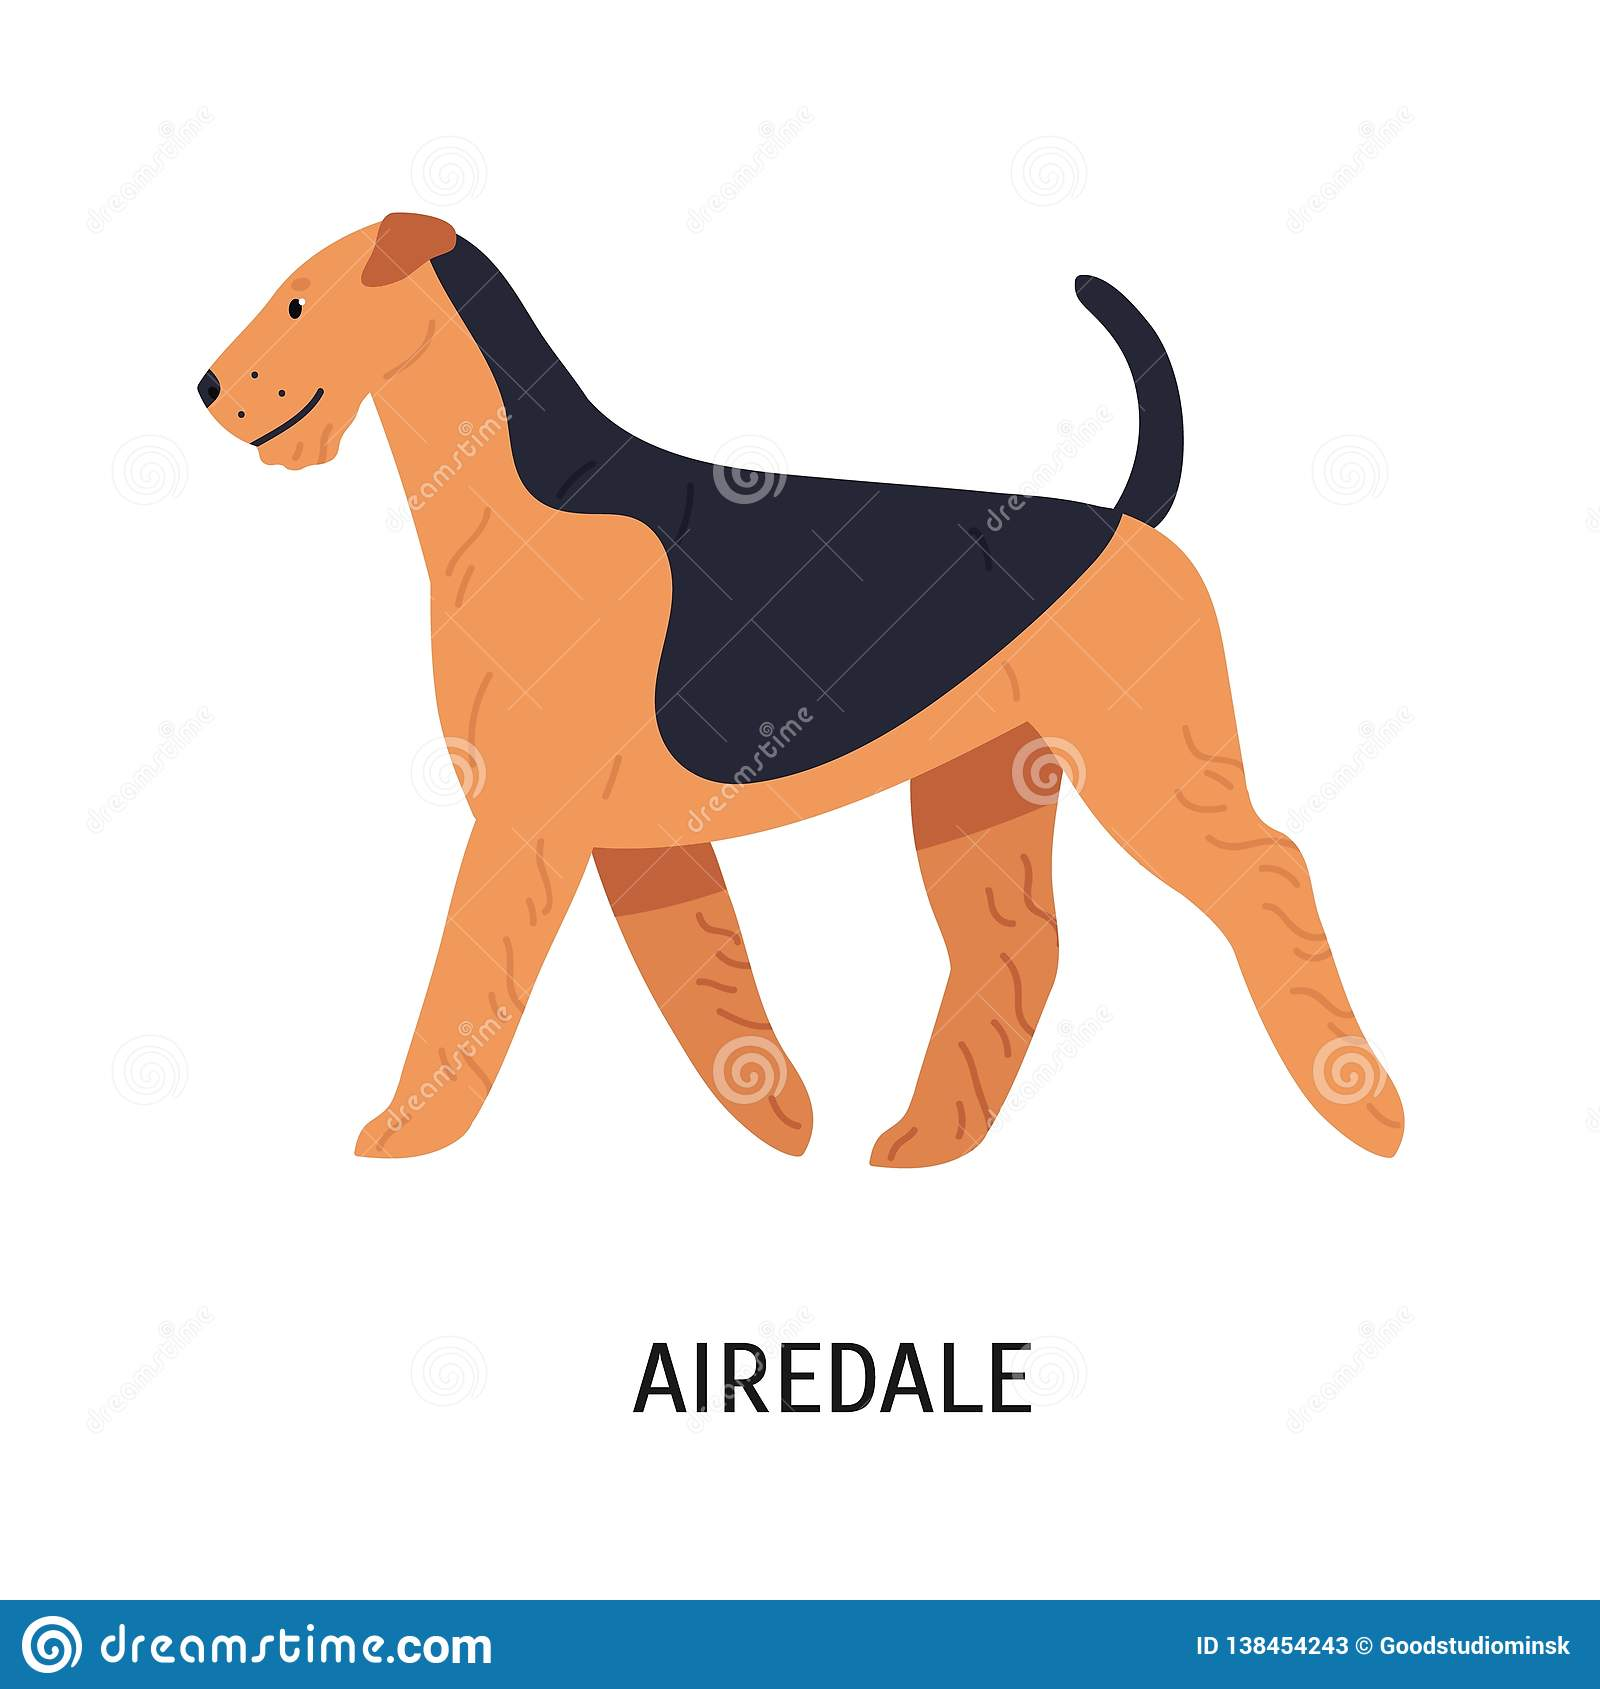 Airedale Bingley Or Waterside Terrier Beautiful Dog Of Hunting